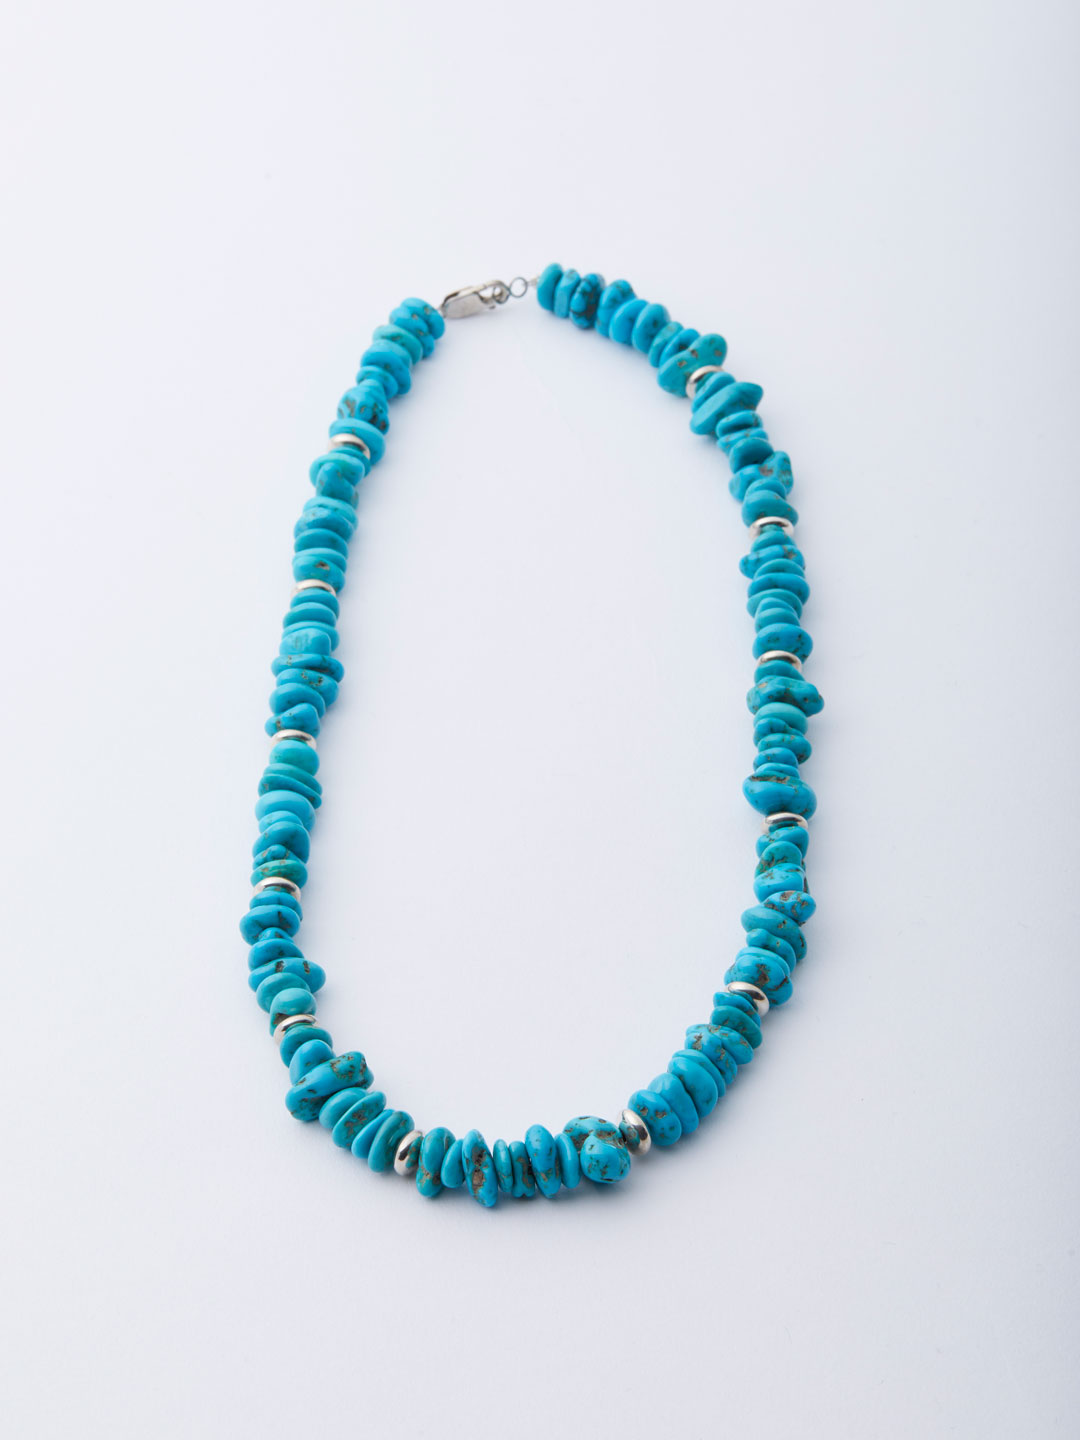 Sleeping Beauty Turquoise Silver Necklace - Blue